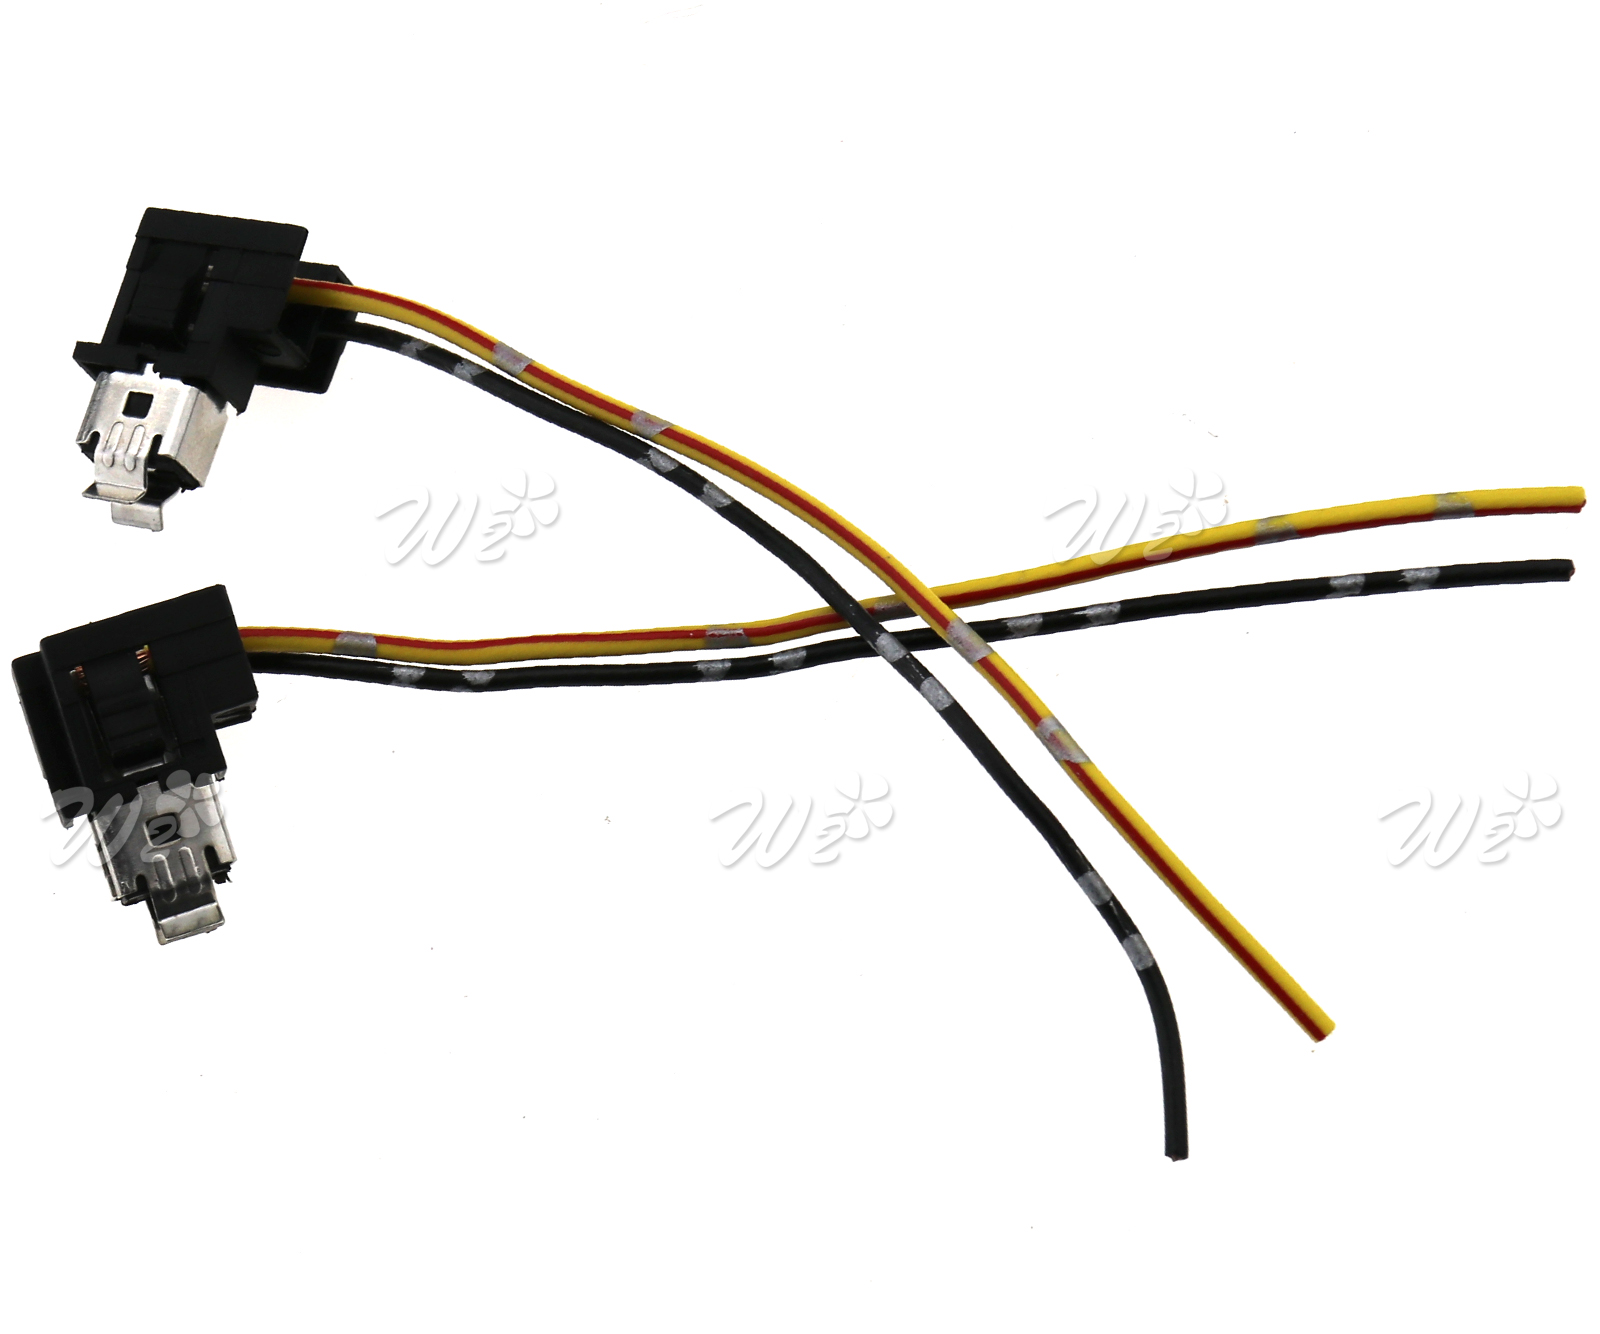 H1 Bulb Wiring | Wiring Diagram H Headlight Socket Wiring Diagram on